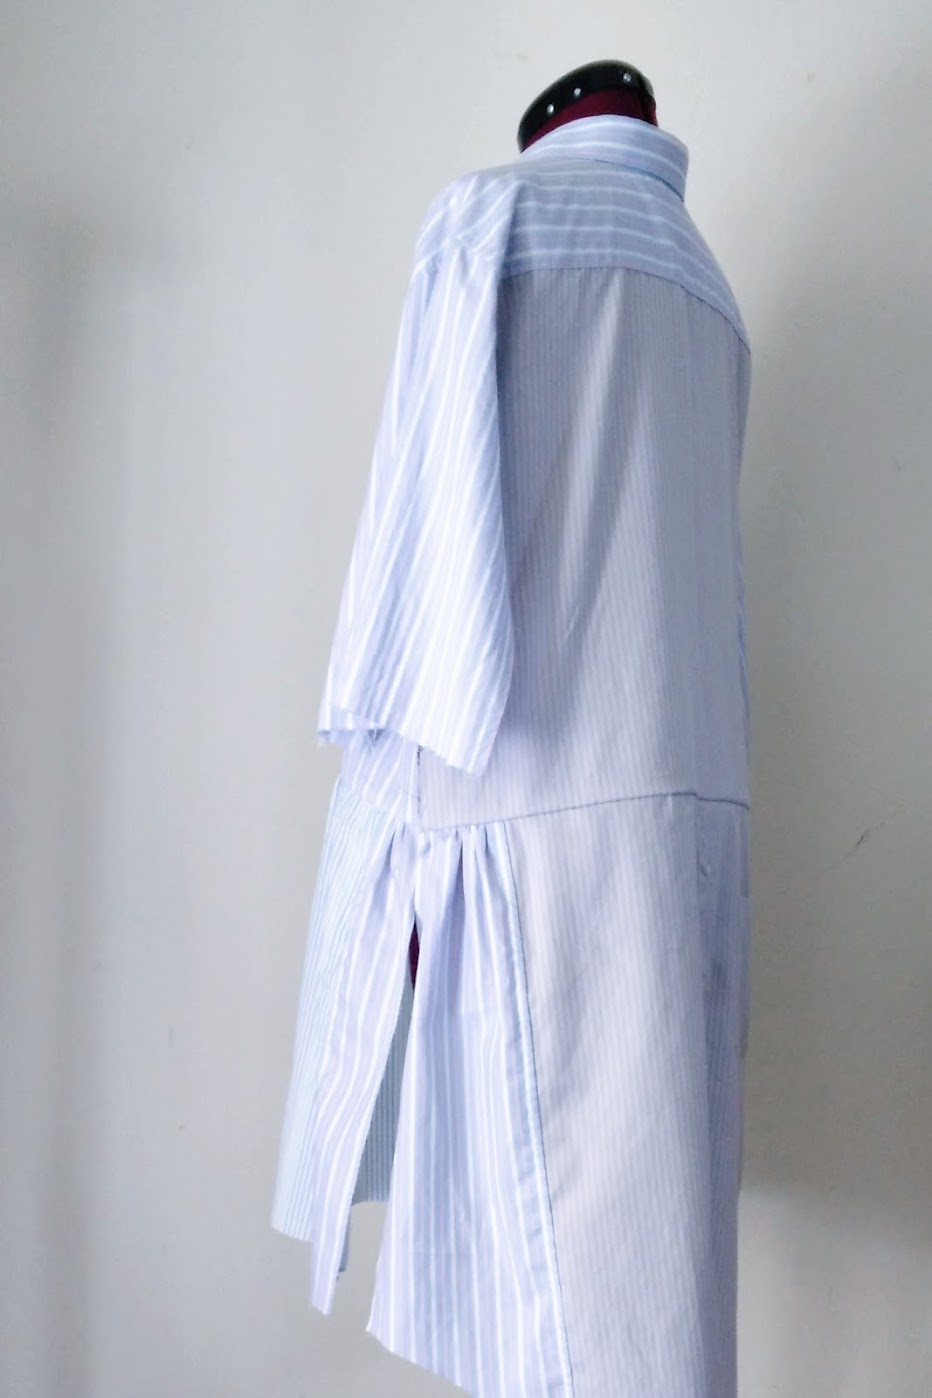 In-Progress: Shirt Dress with Bow Detail - DIY Fashion project | fafafoom.com